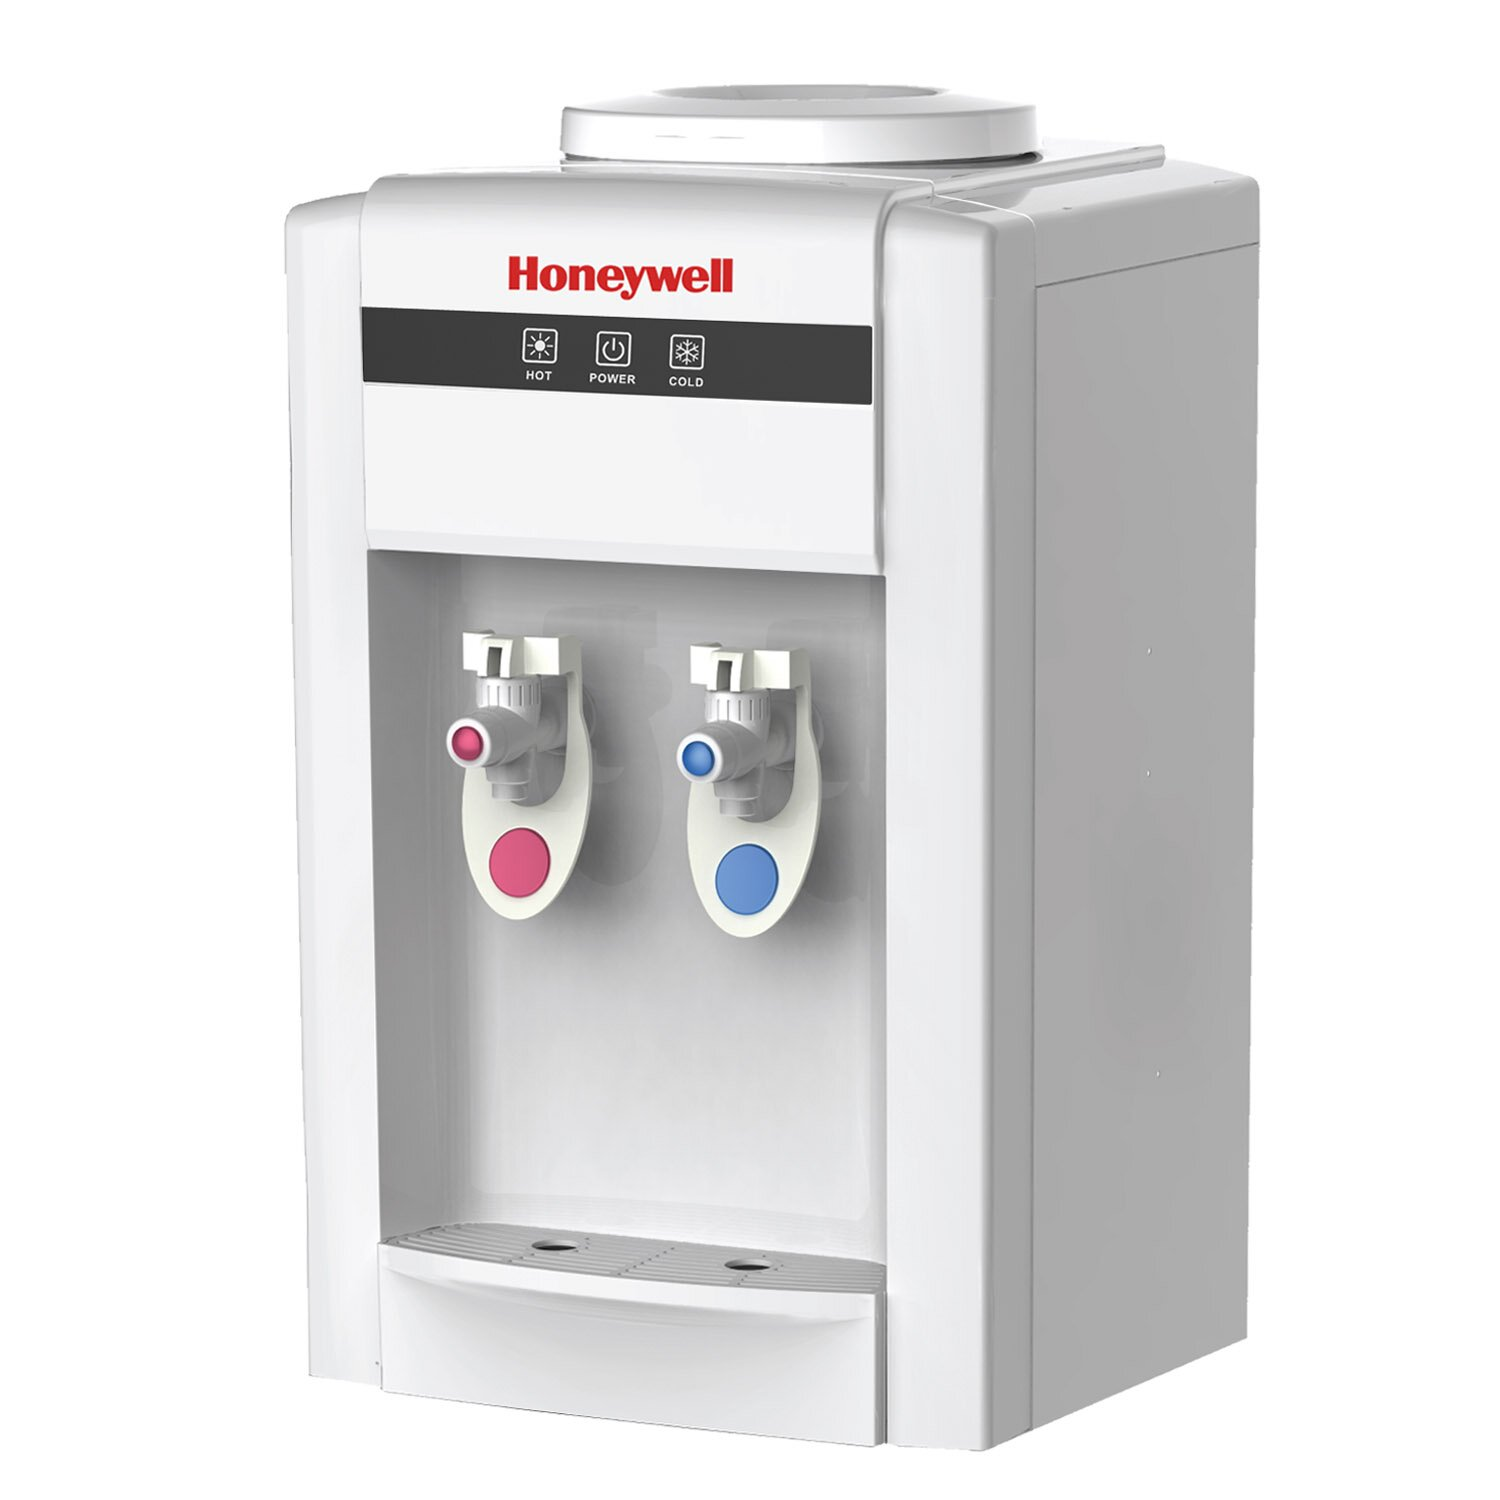 Countertop Hot And Cold Water Dispenser : ... 21-Tabletop-Water-Cooler-Dispenser-with-Hot-and-Cold-Temperatures.jpg